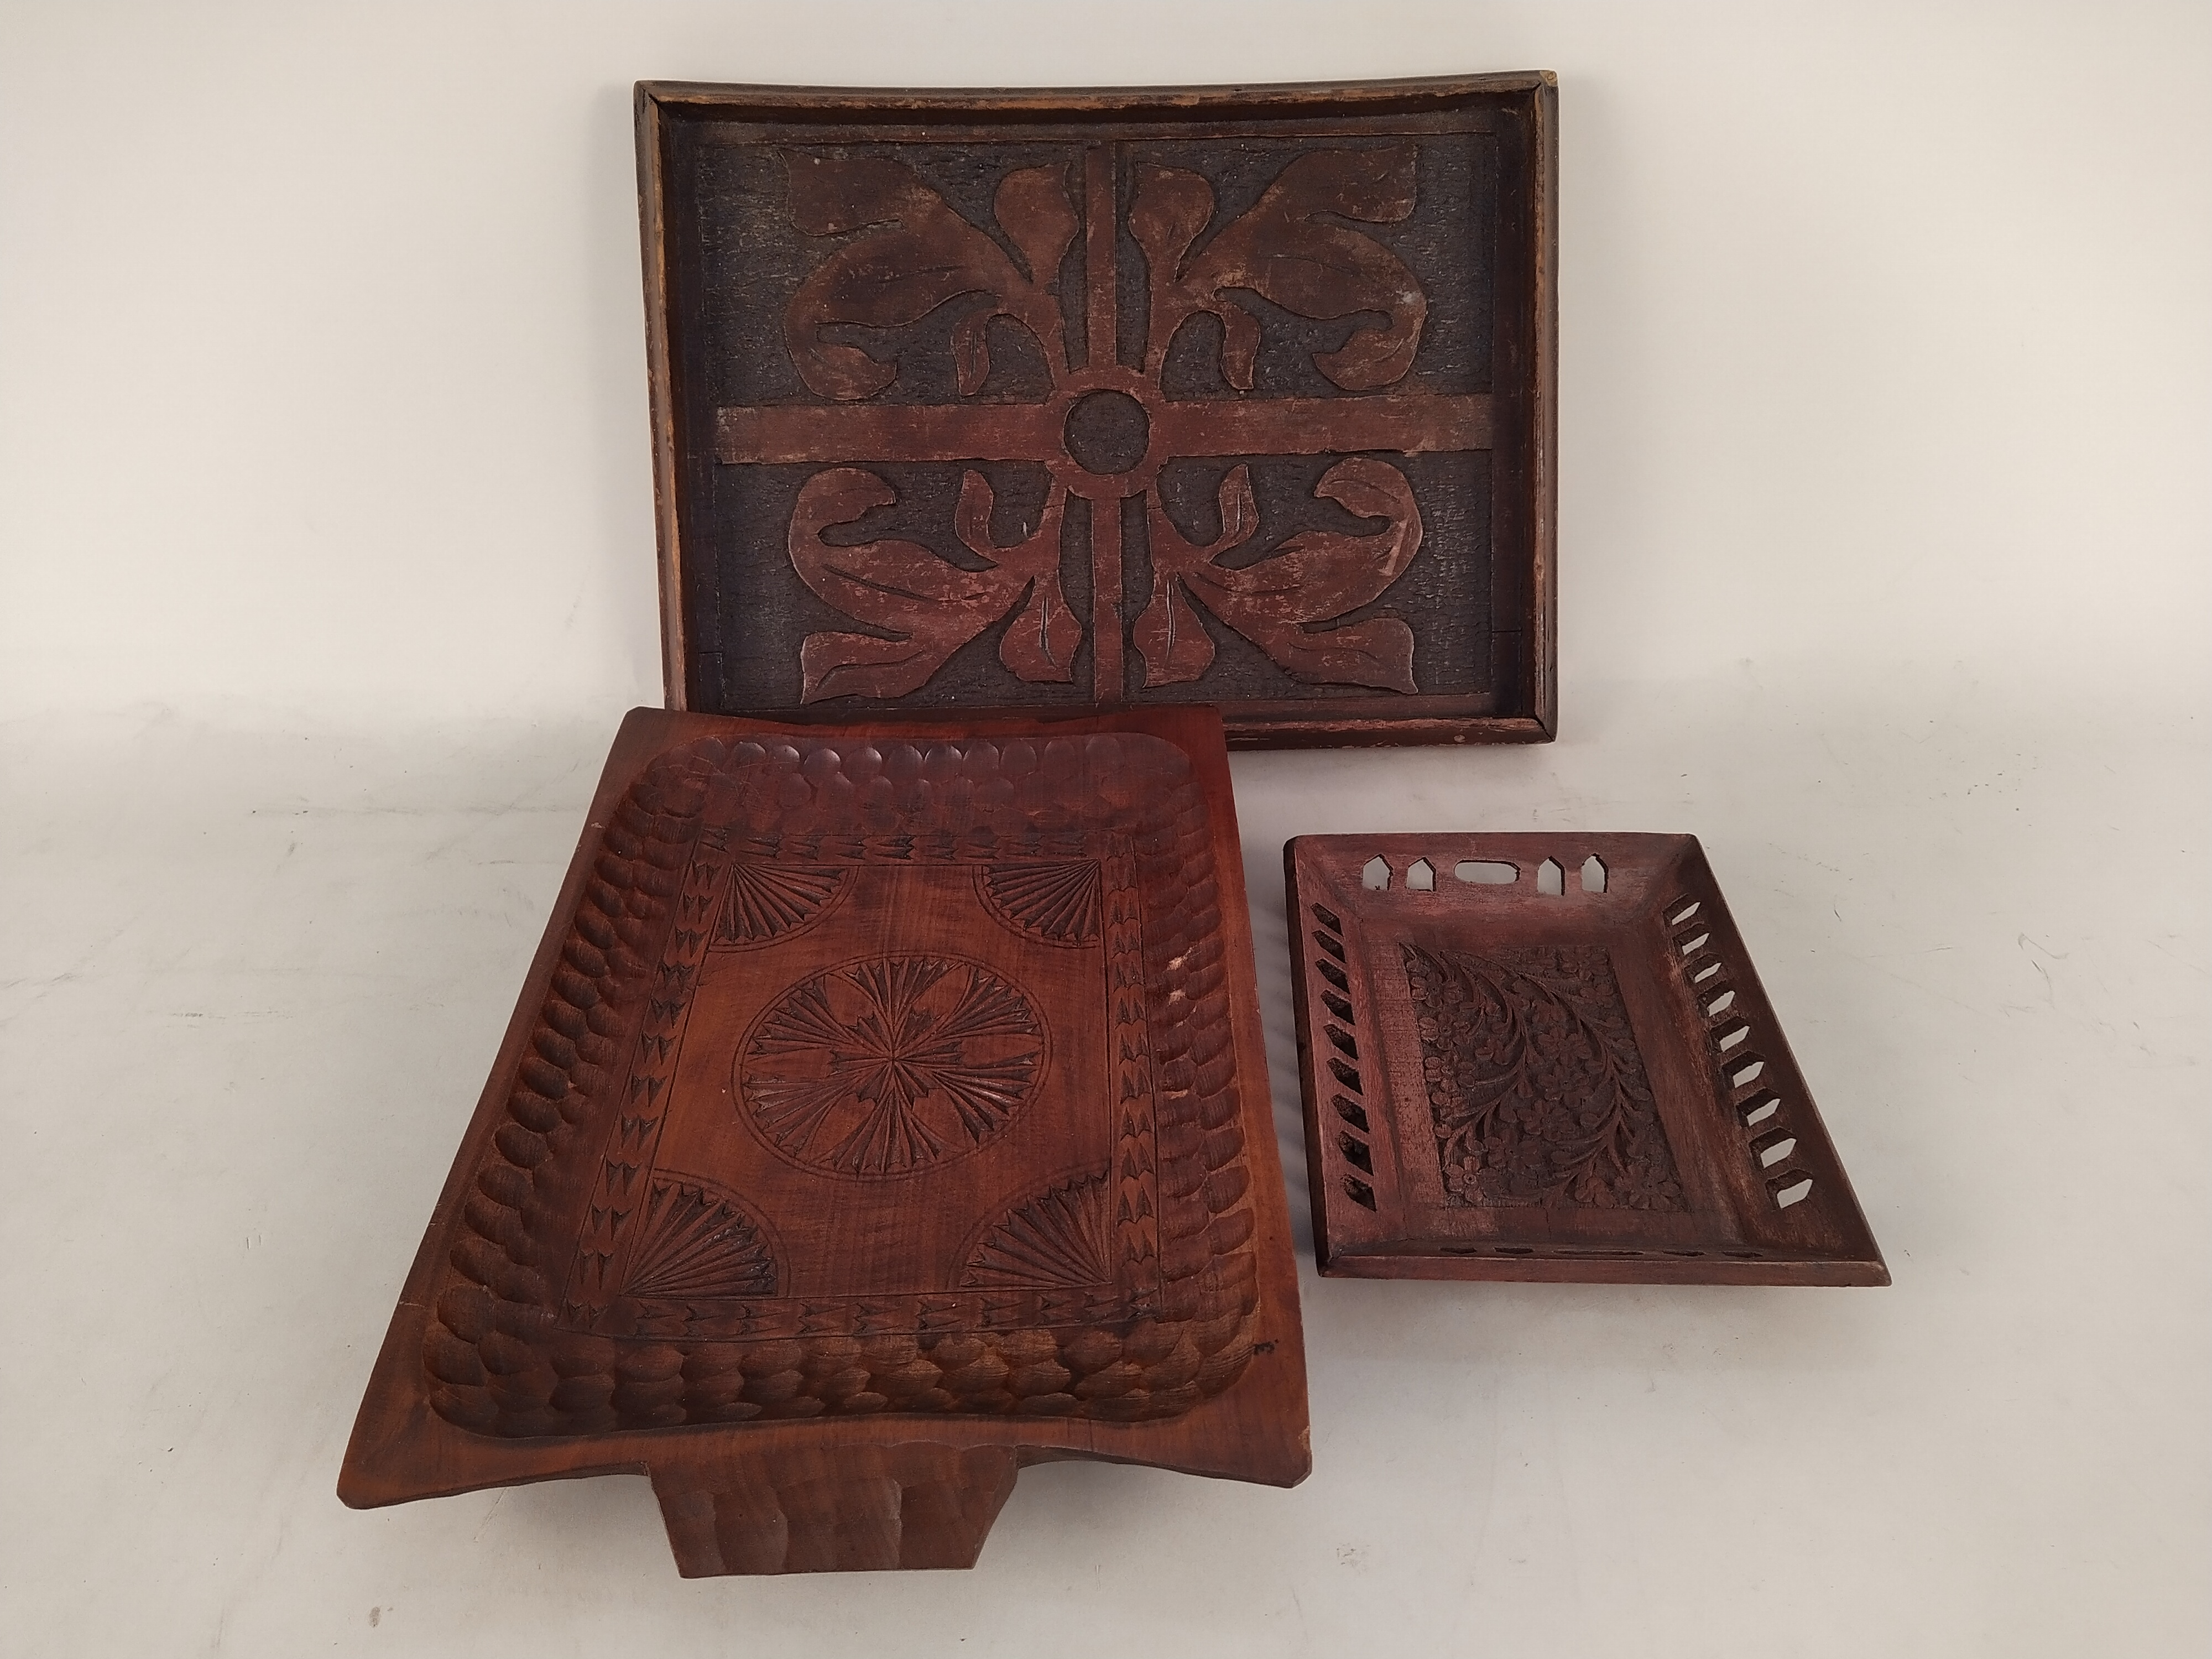 A selection of vintage carved wooden trays including a Trinidad nut tray